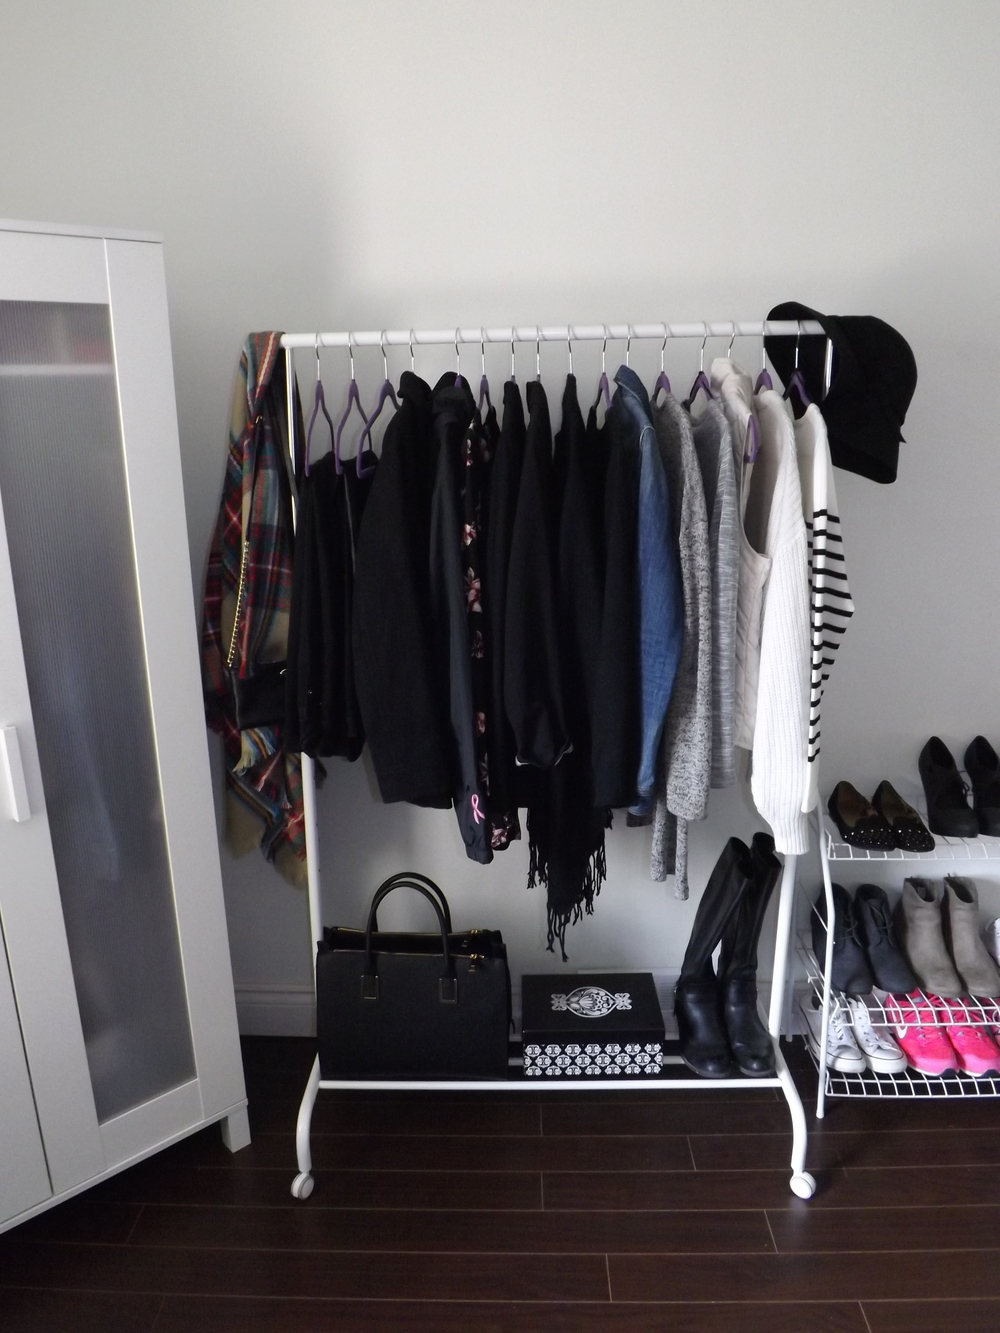 Clothing Rack Display | Tall Girl Meets World